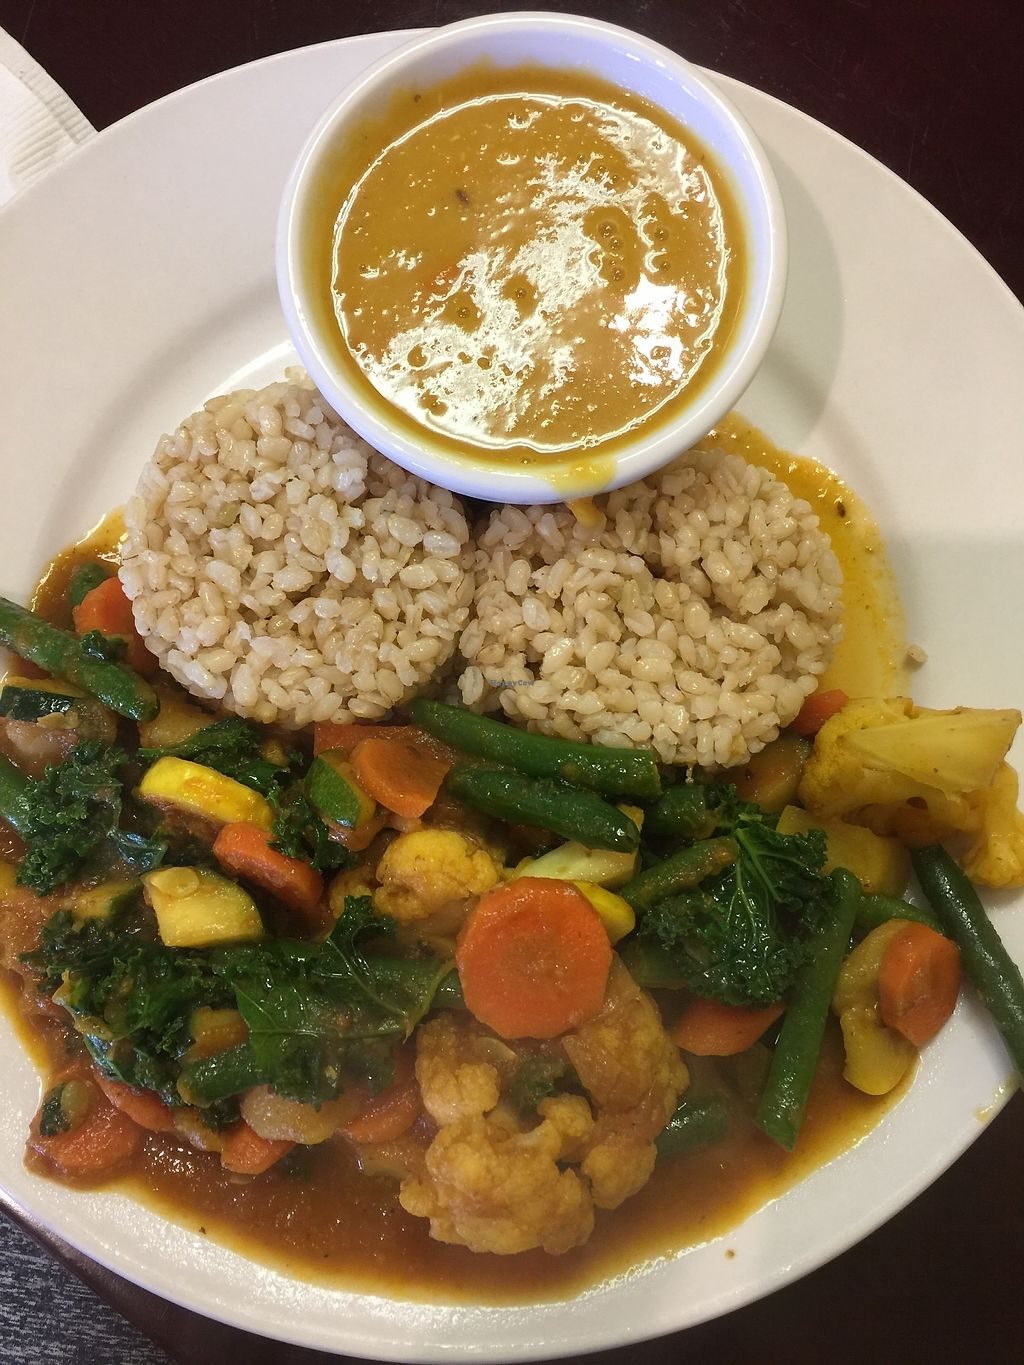 """Photo of Himalayan Organic Cafe  by <a href=""""/members/profile/Eforbes"""">Eforbes</a> <br/>Veggie Tomato Curry with Lentil Soup <br/> January 6, 2018  - <a href='/contact/abuse/image/106760/343752'>Report</a>"""